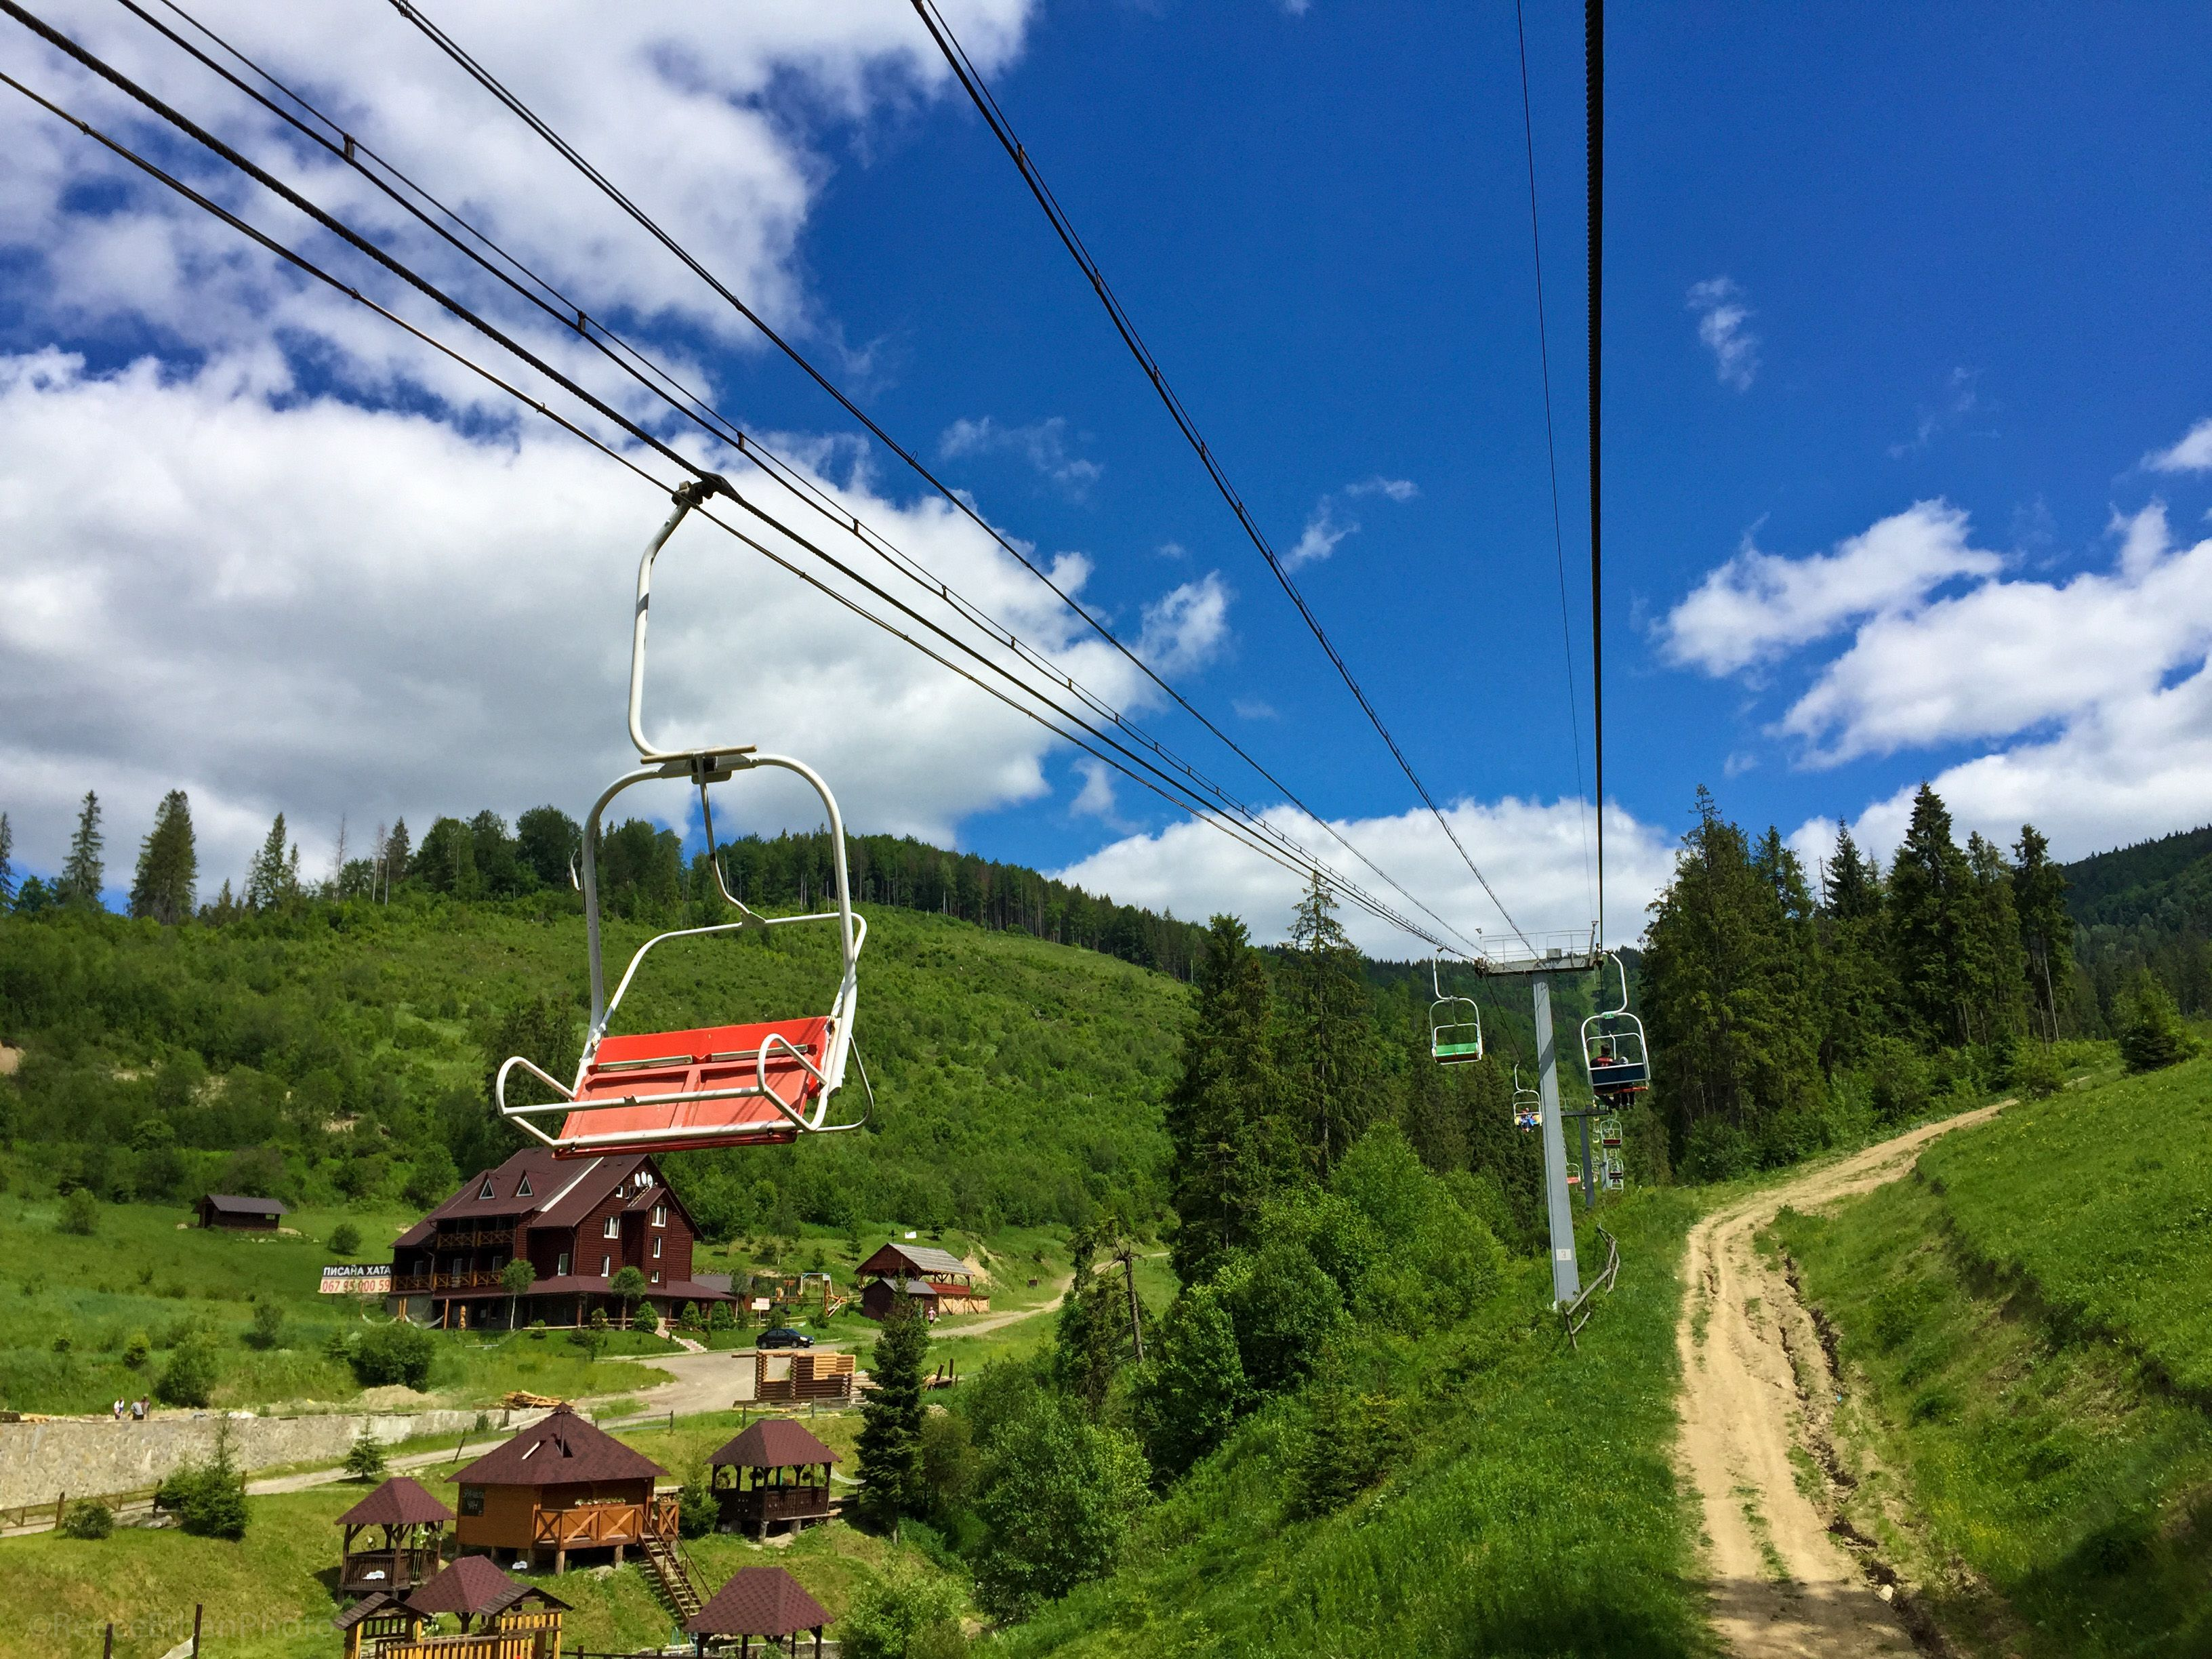 Red chair on a ski lift in the Carpathian Mountains near